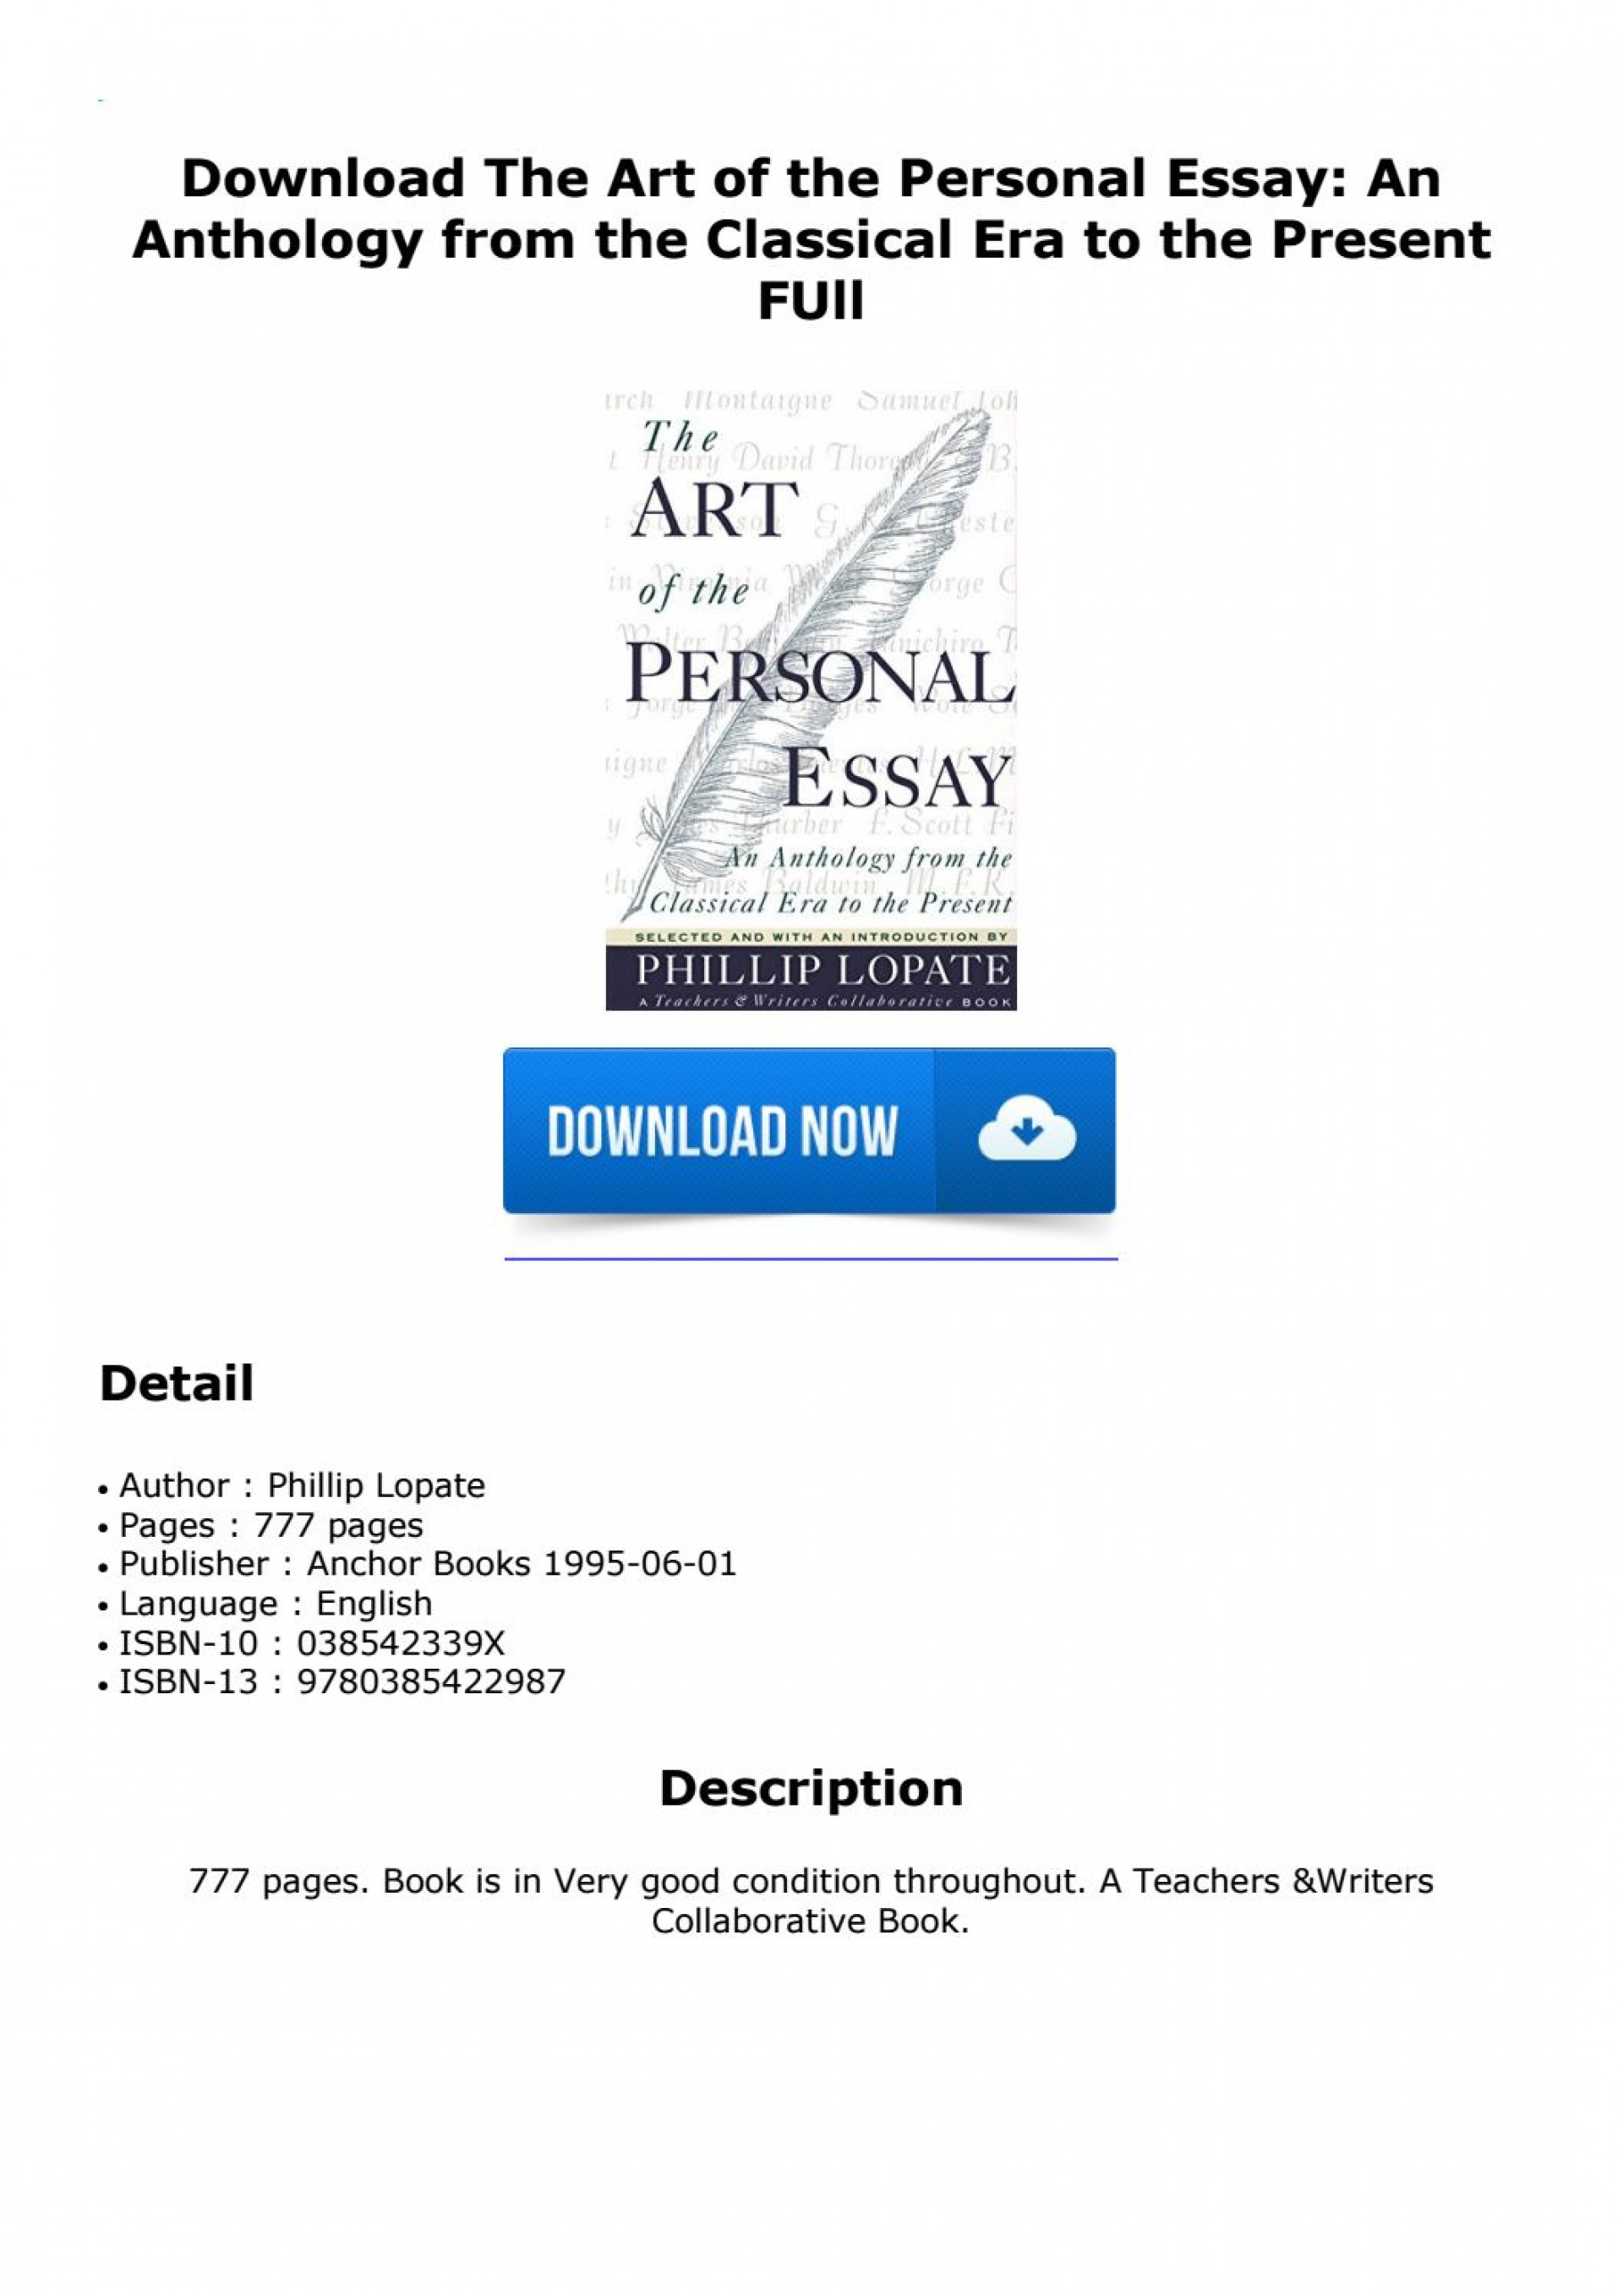 002 Page 1 The Art Of Personal Essay Beautiful Phillip Lopate Table Contents Sparknotes 1920